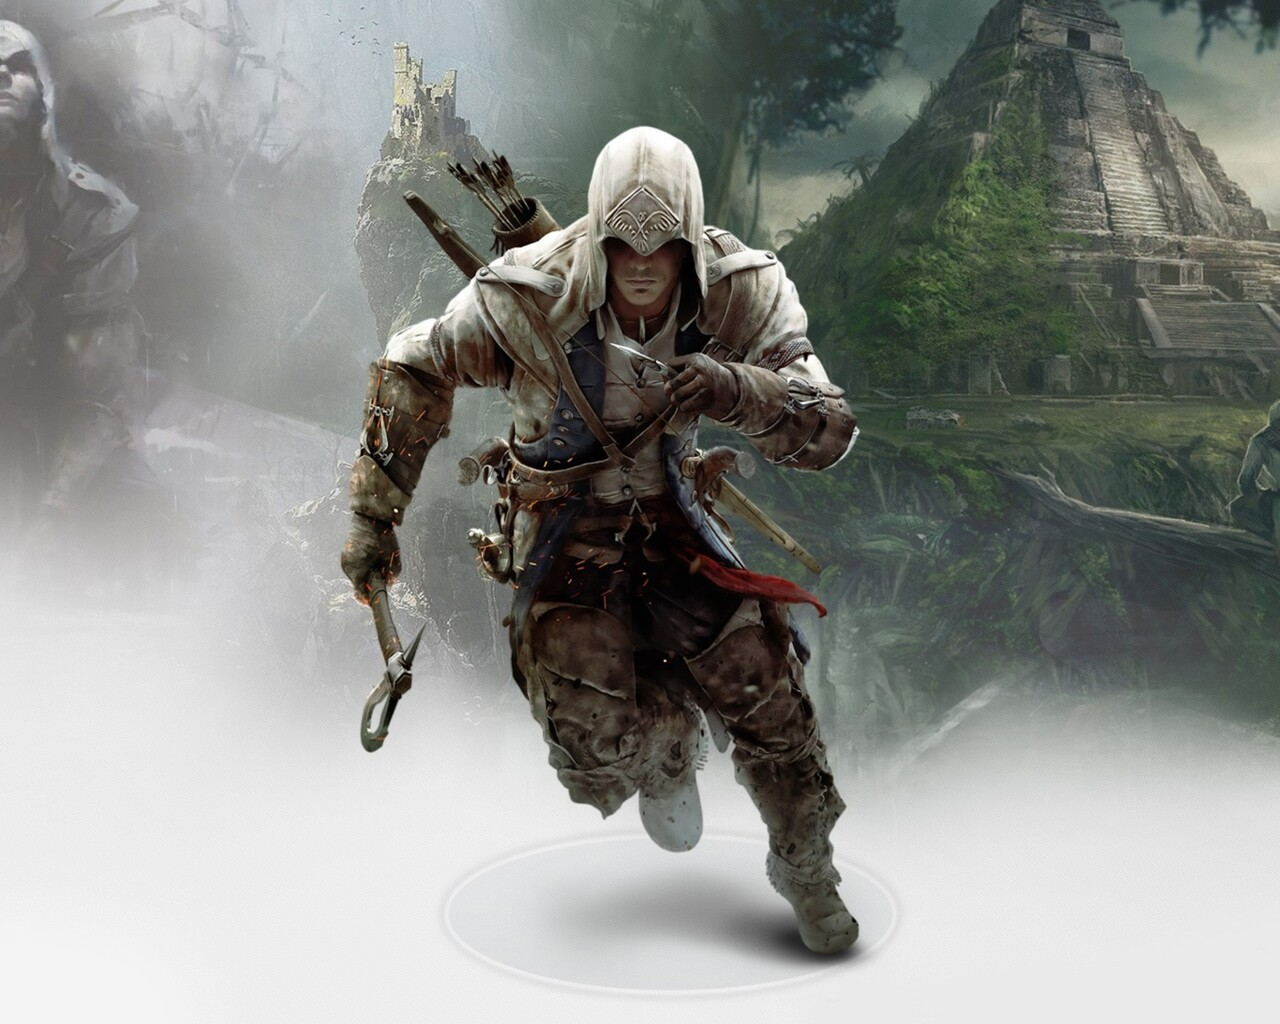 1280x1024 Connor In Assassins Creed 3 1280x1024 Resolution Hd 4k